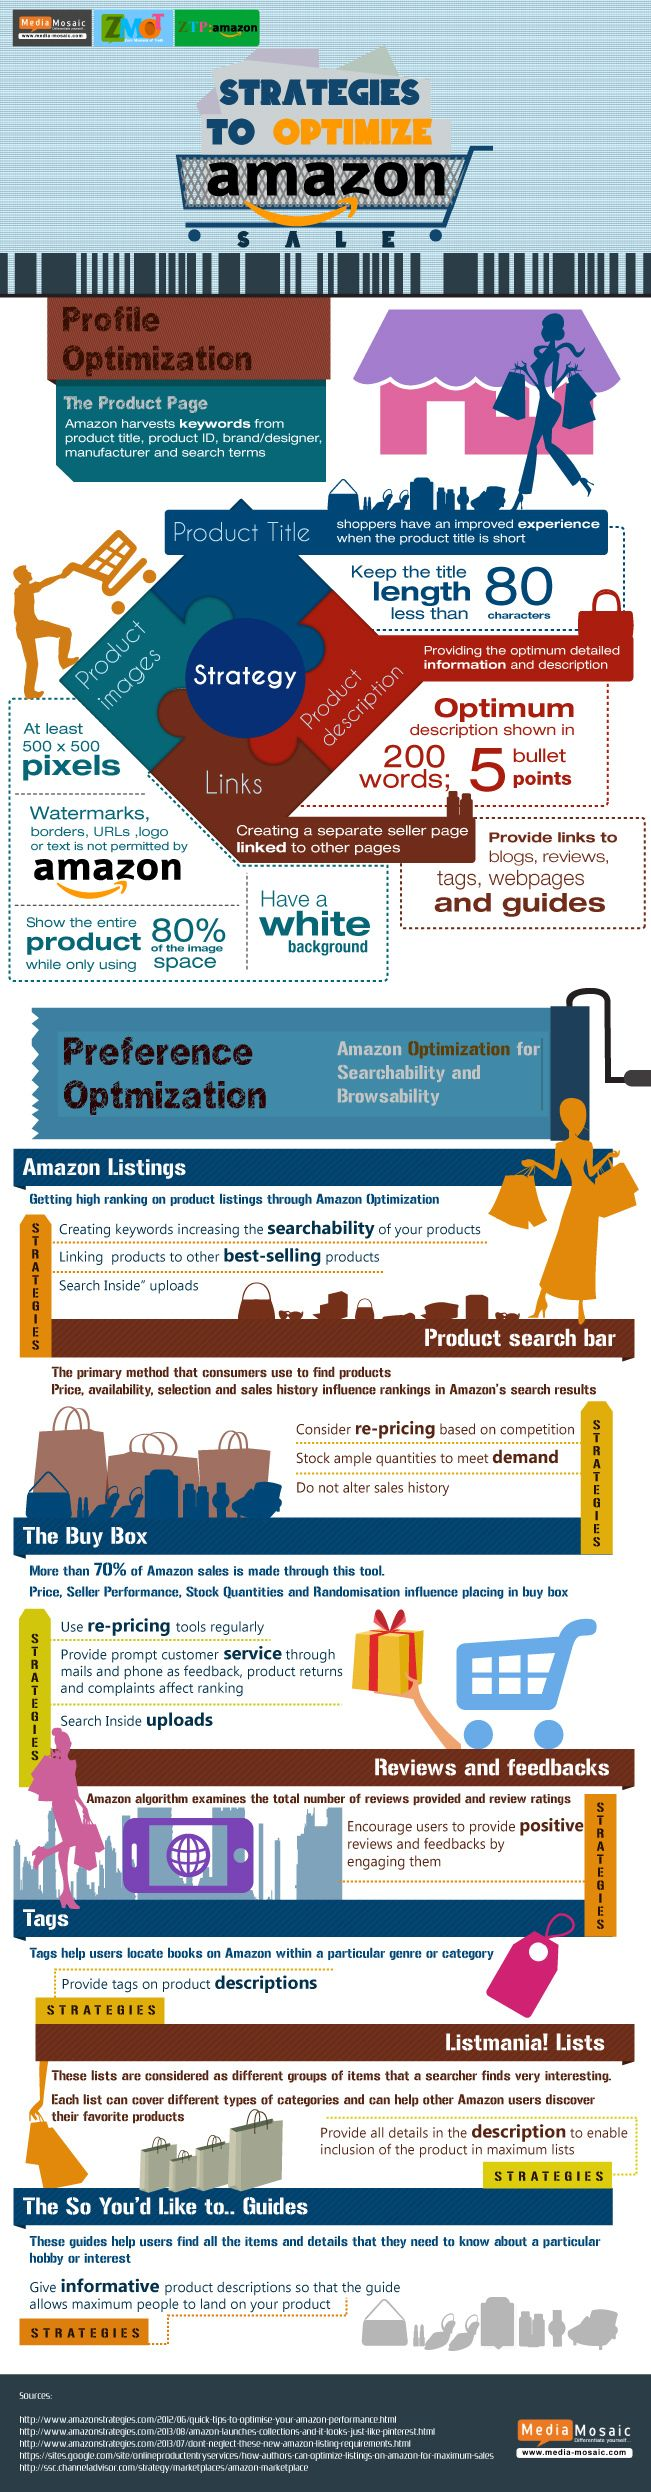 Las Mejores Estrategias para Optimizar Amazon / Best Strategies to Optimize Amazon